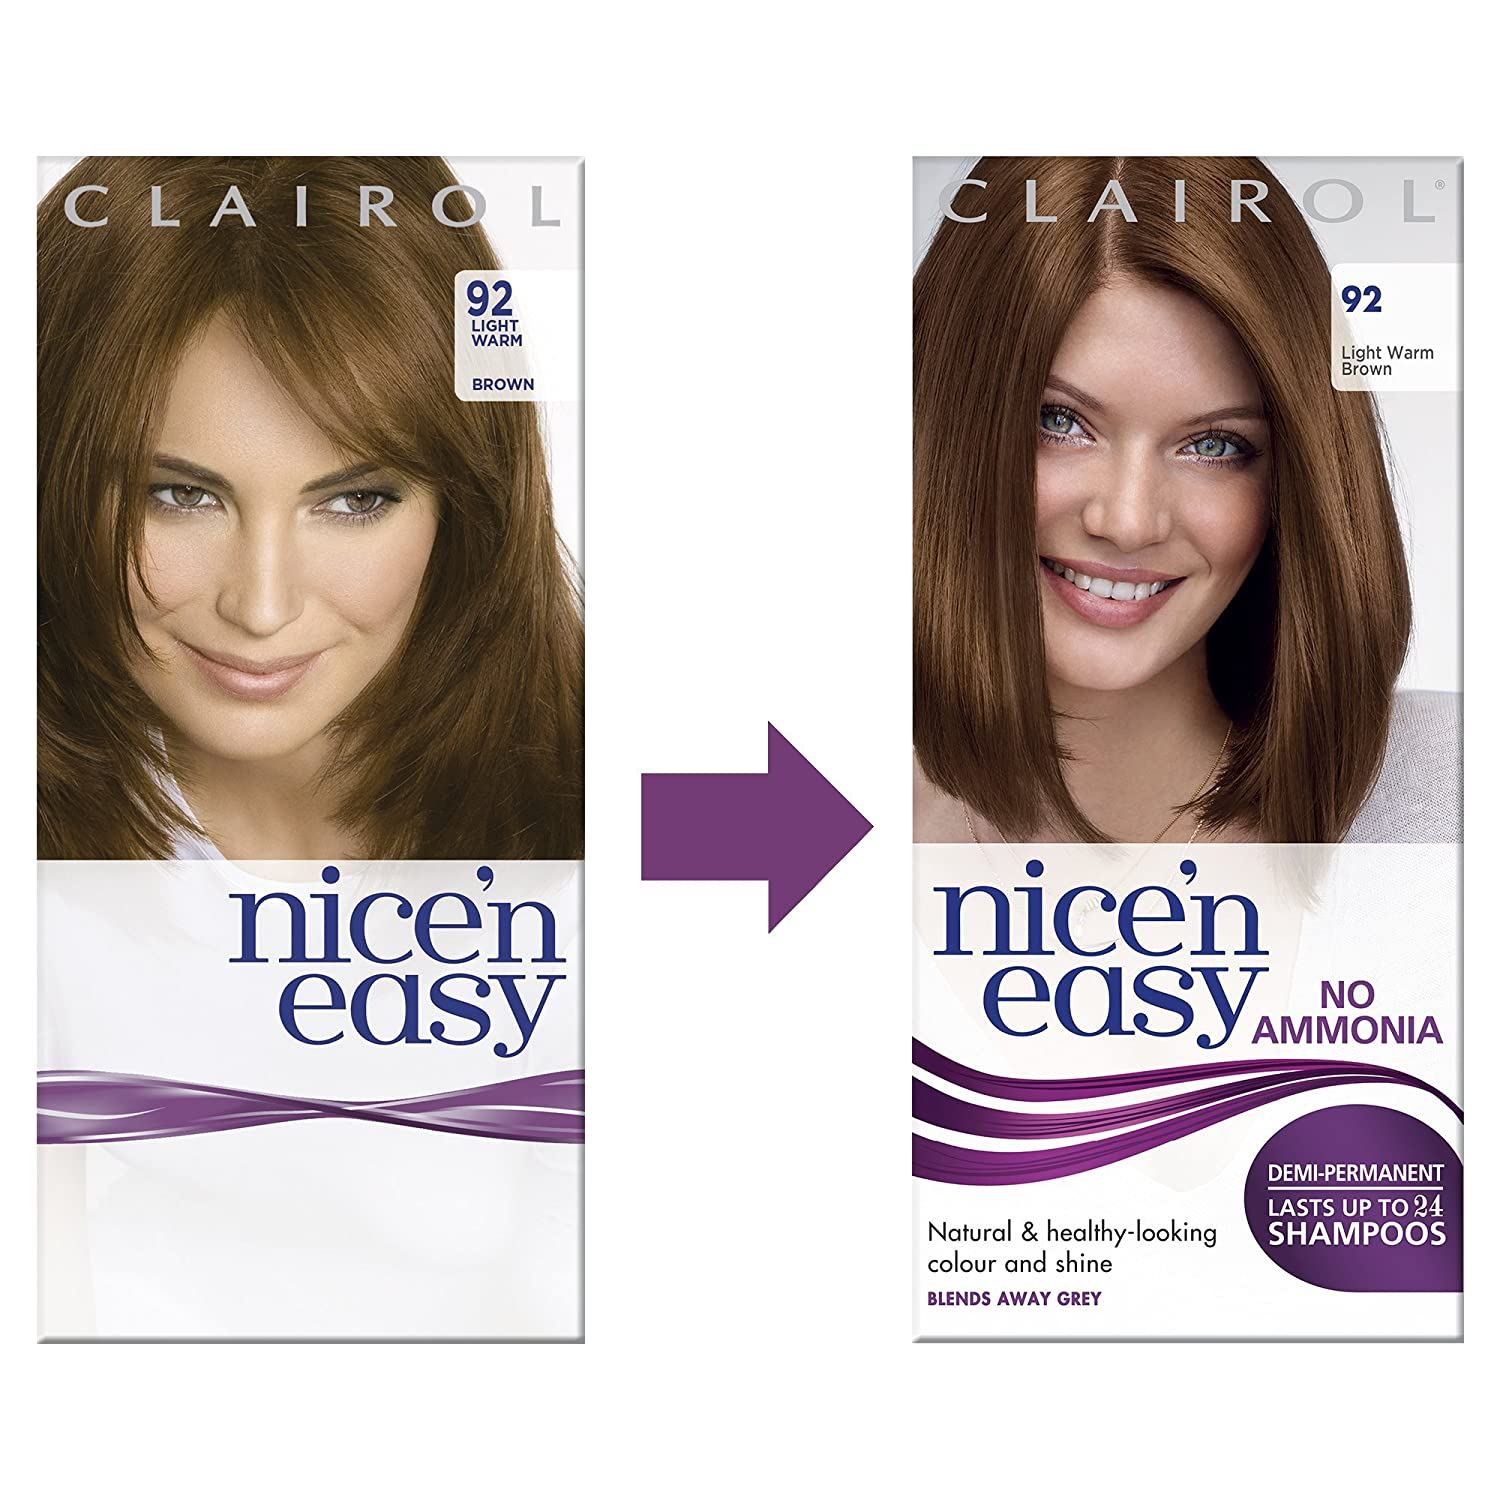 Excellent natural demi permanent hair color creative concepts clairol nice n easy semi permanent hair dye no ammonia 92 light image source amazon geenschuldenfo Gallery